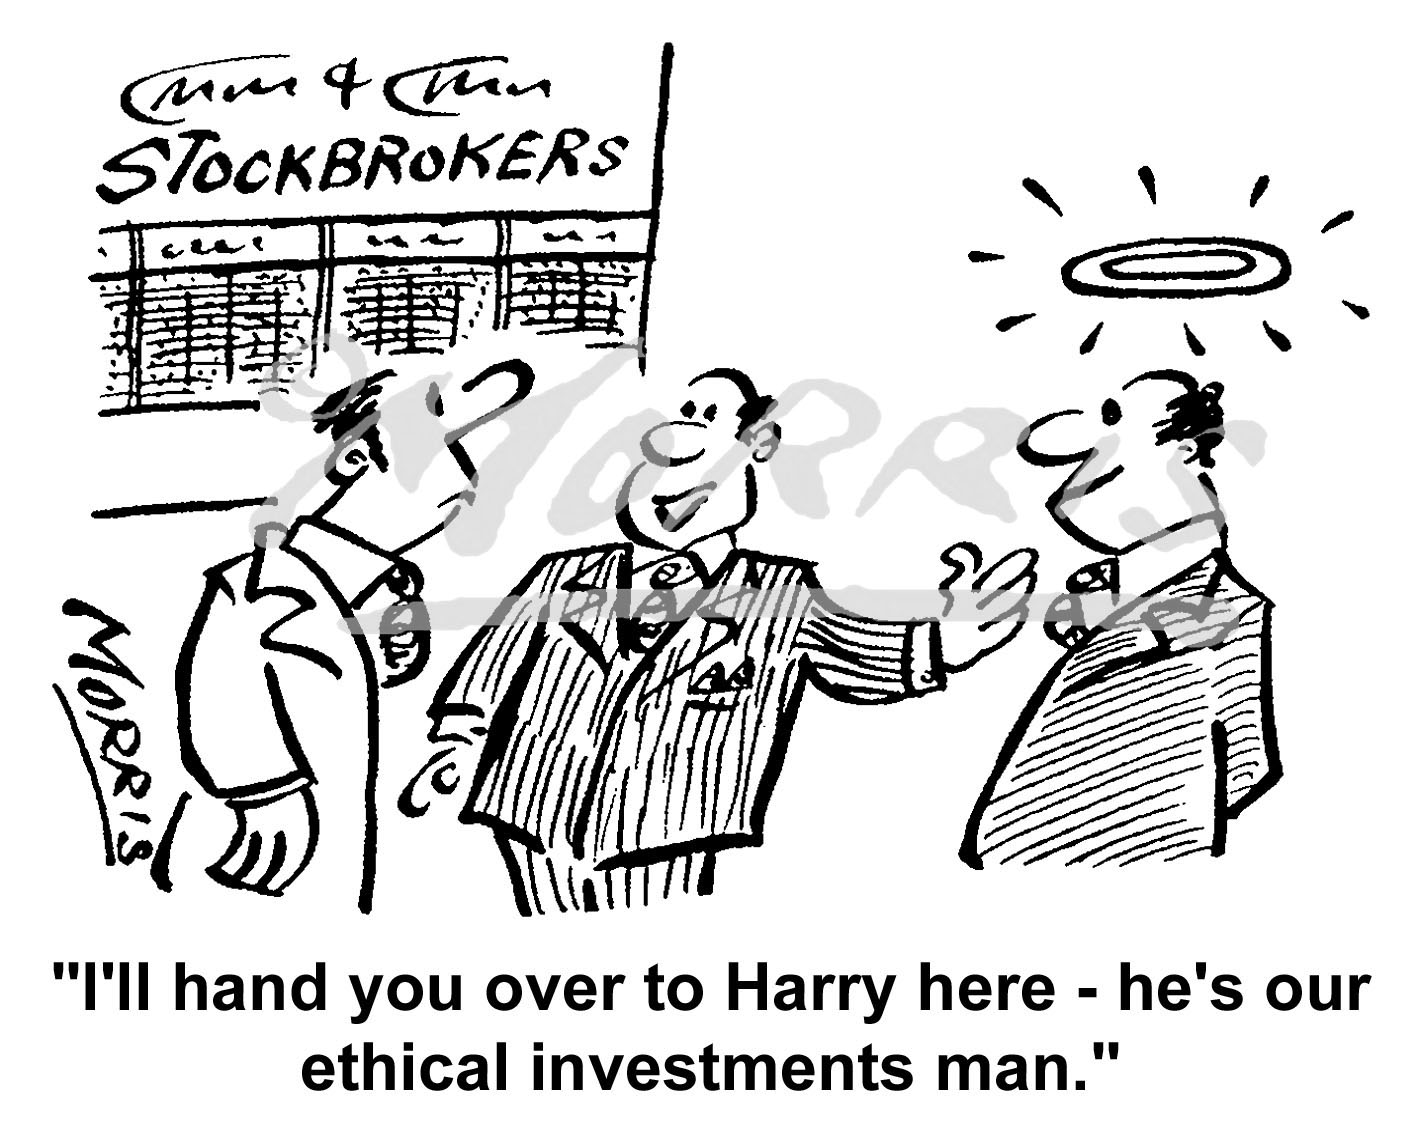 Ethical investment cartoon – Ref: 4973bw